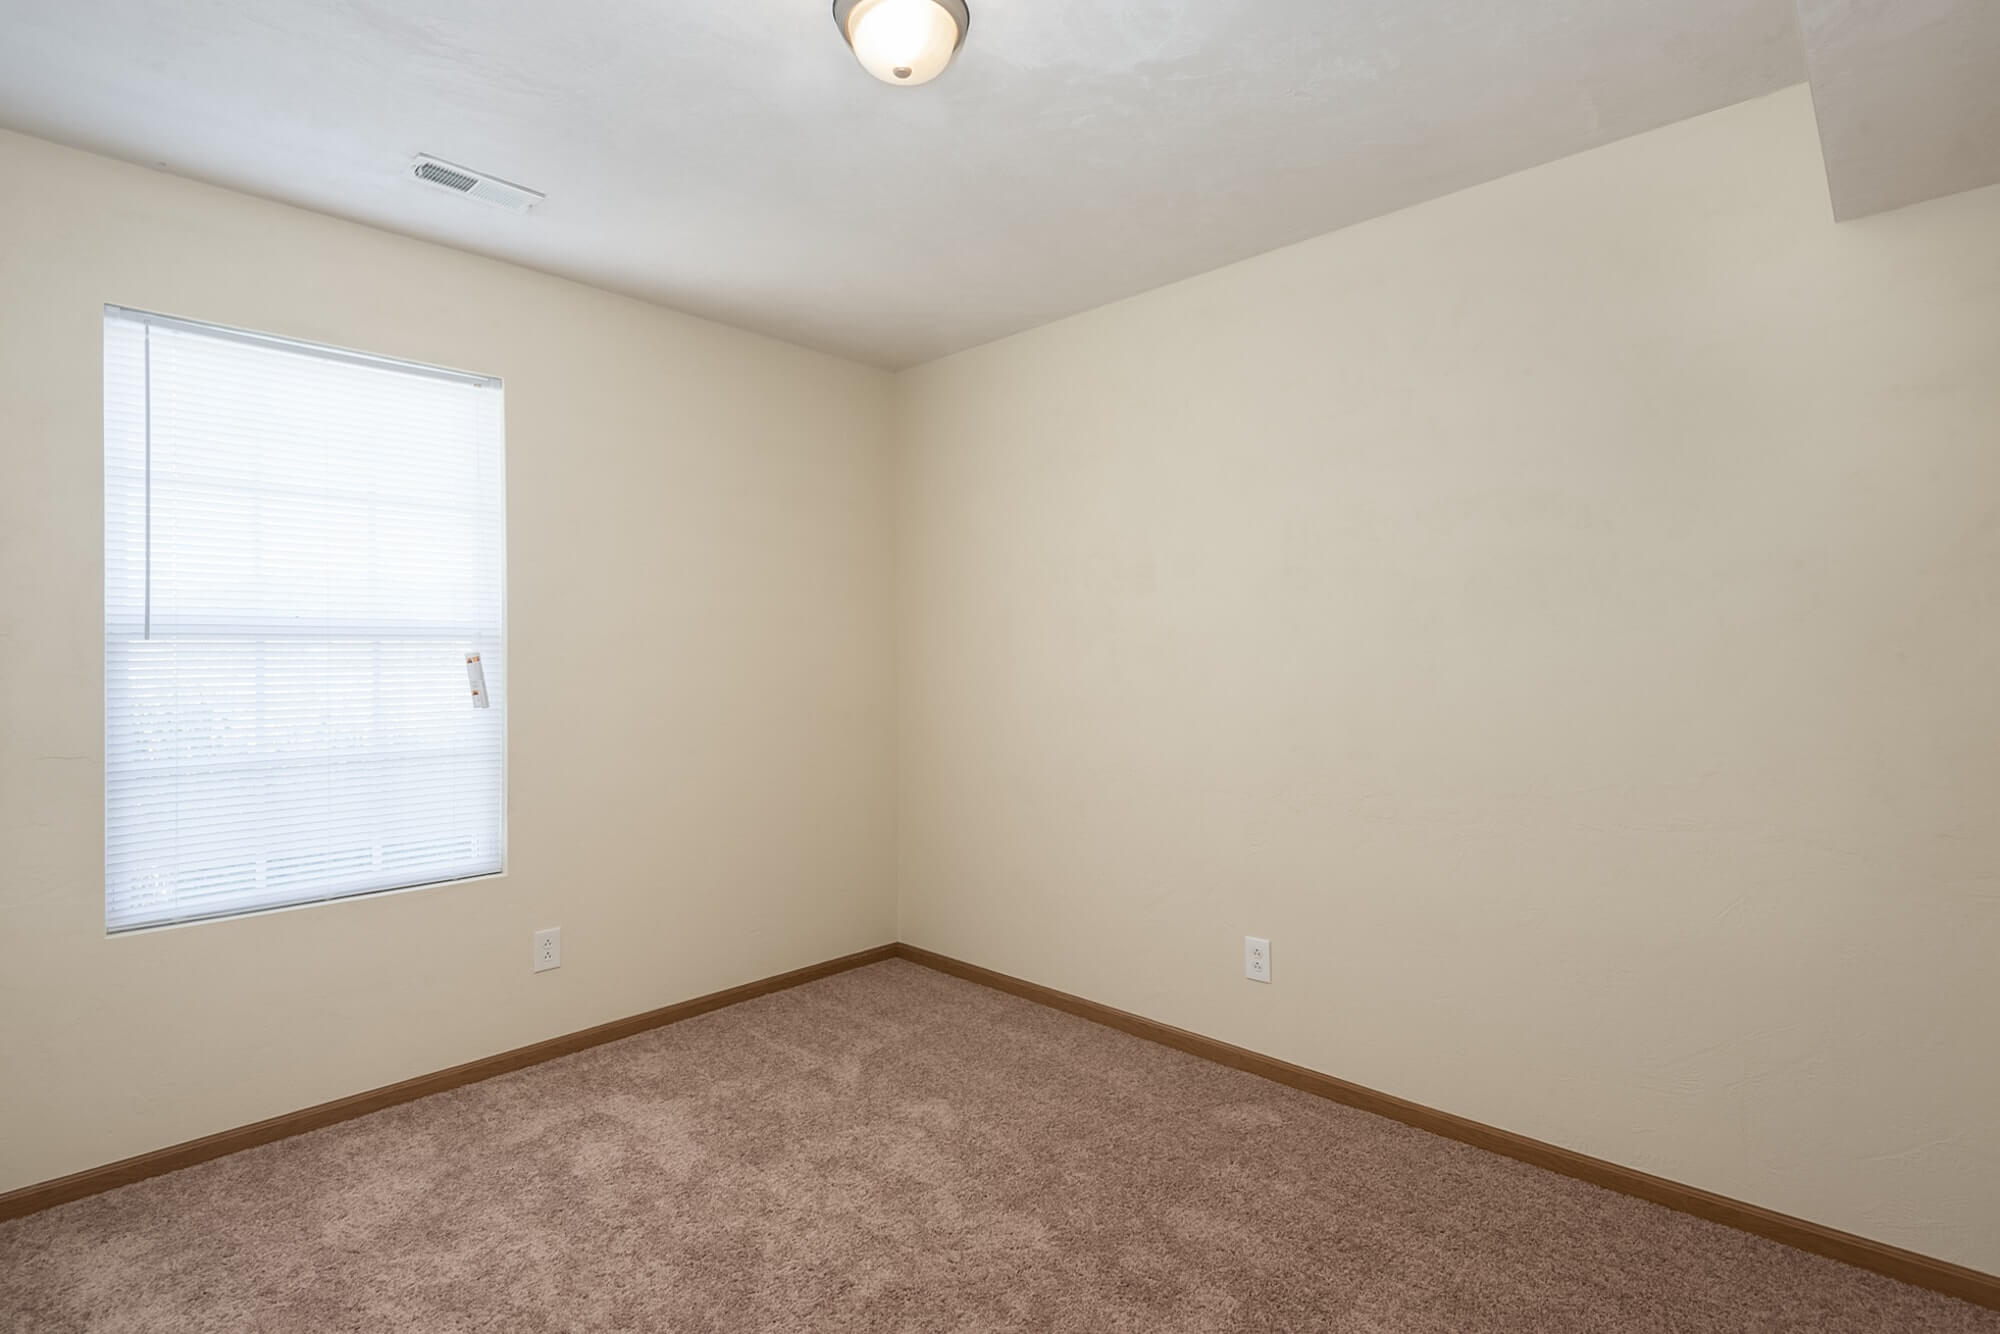 Three Bedroom Apartment In Lebanon, IL